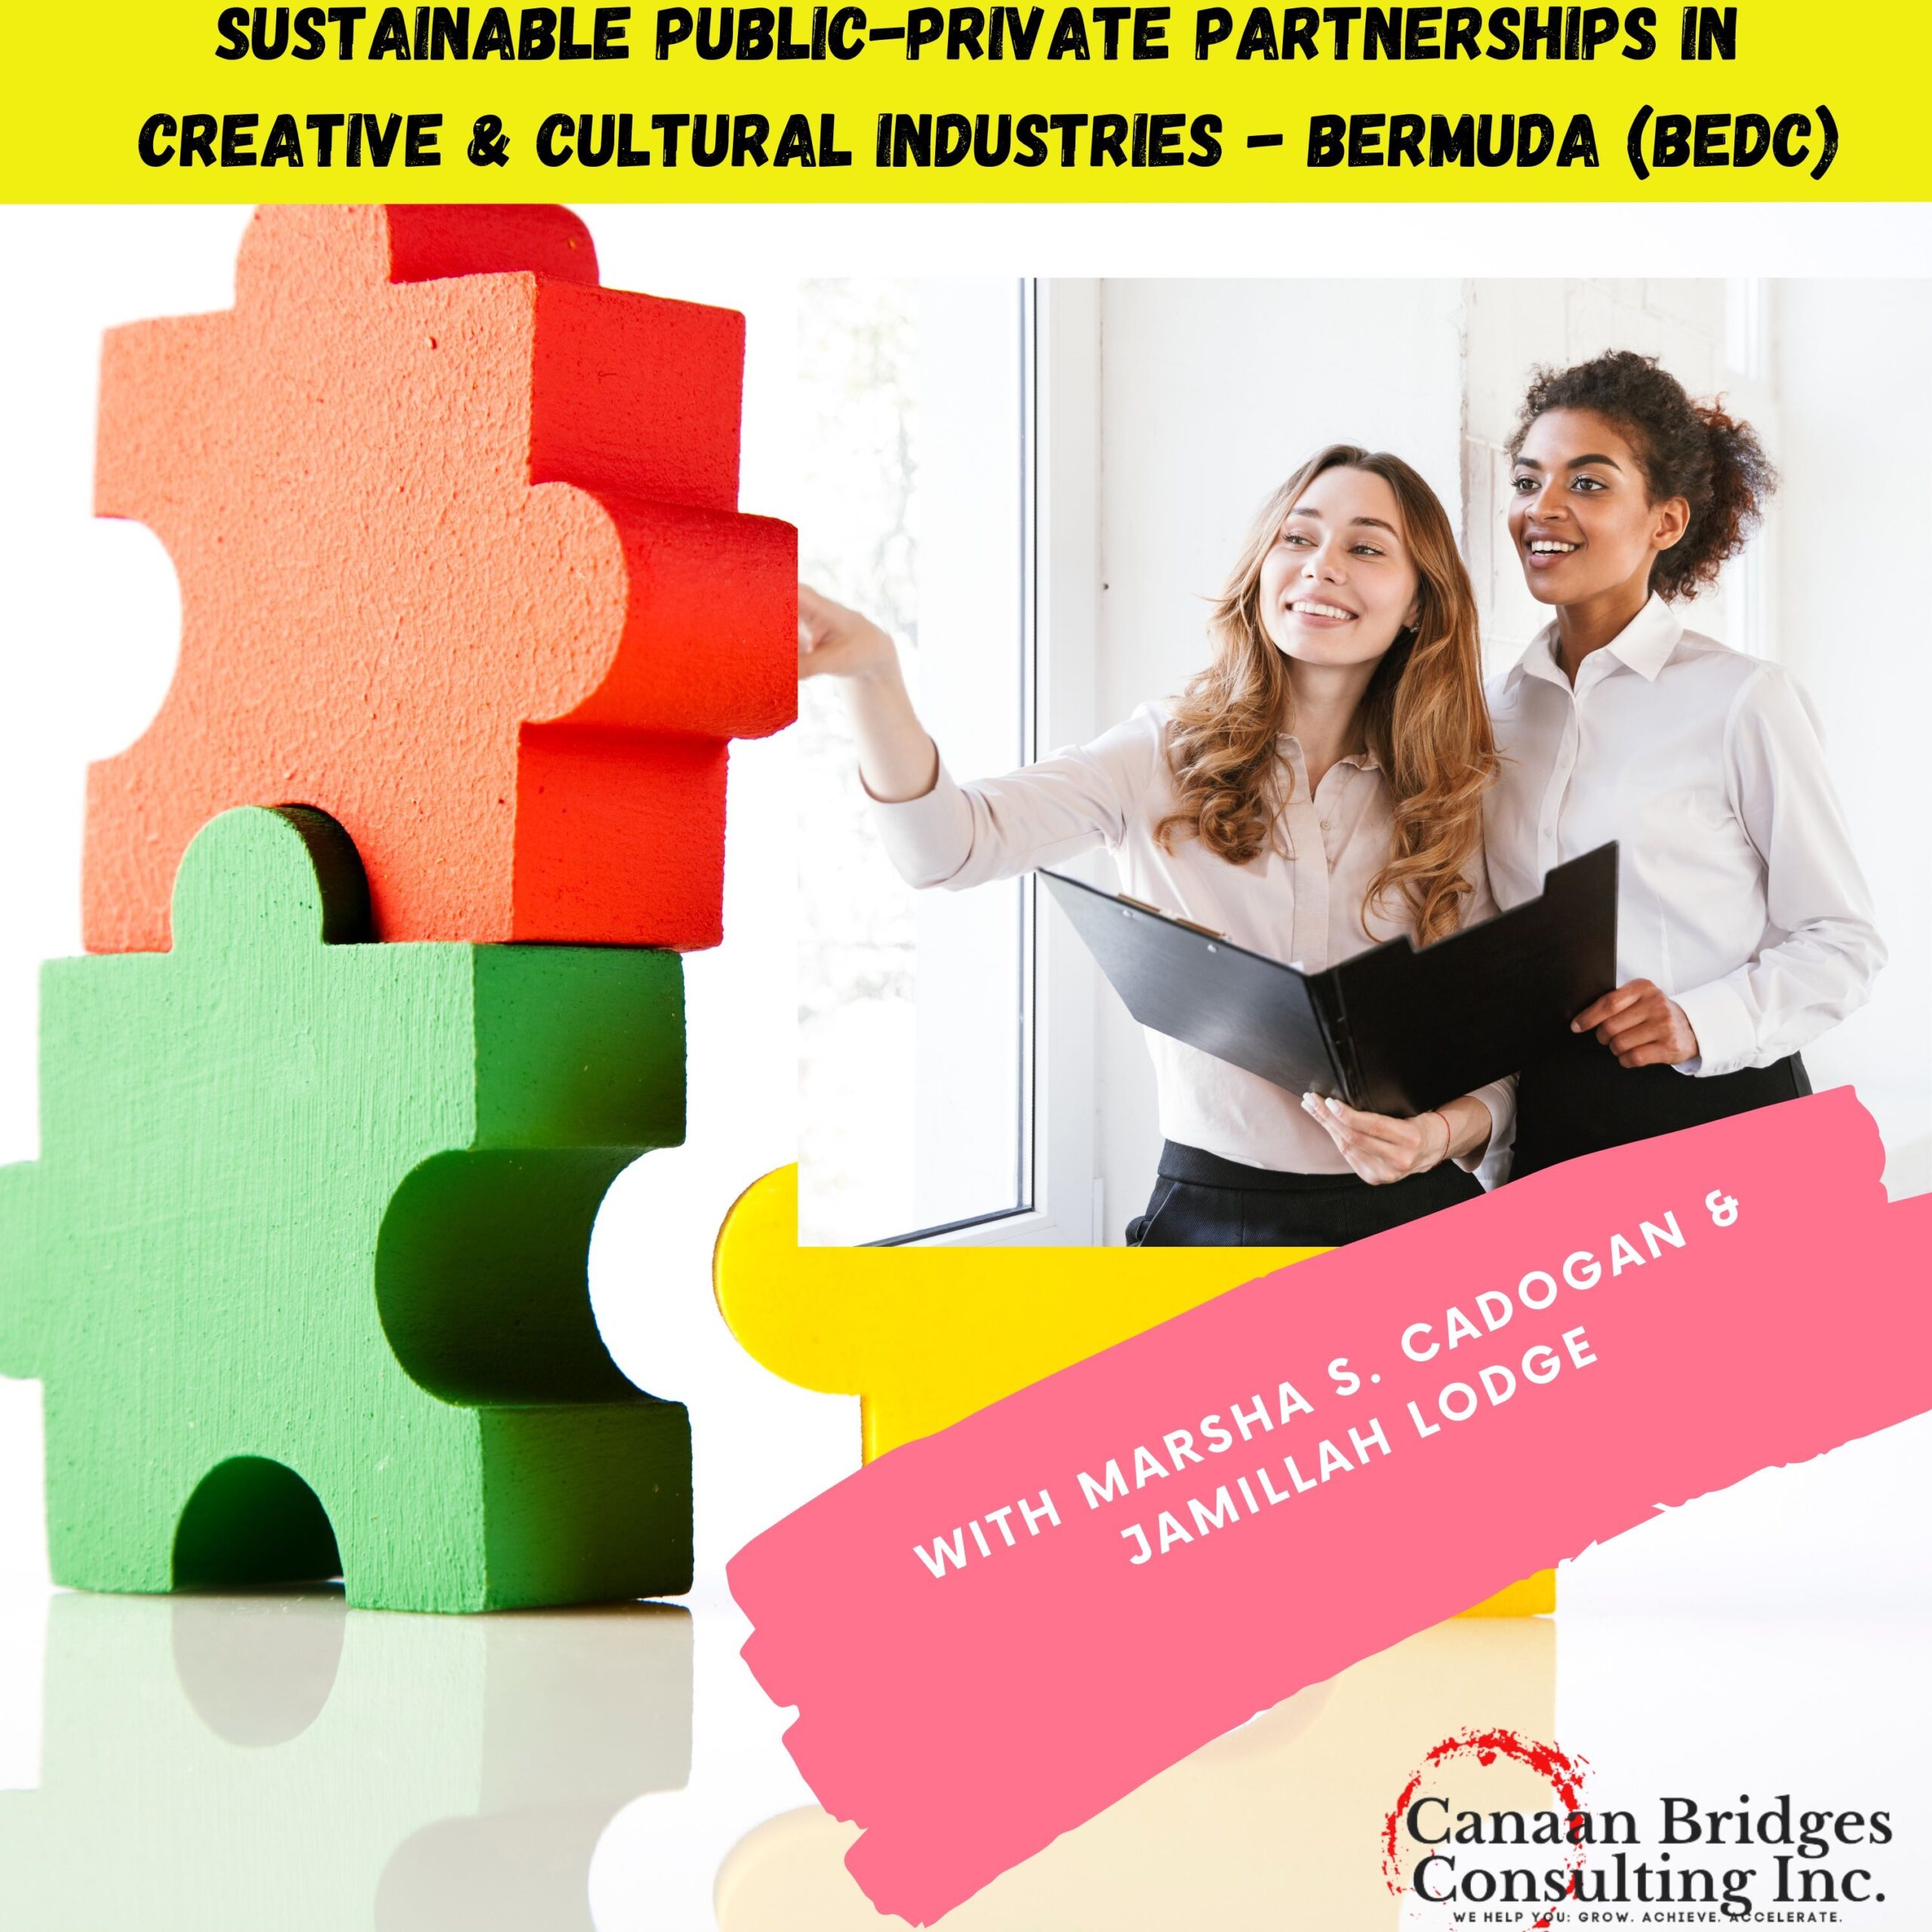 Sustainable Public-Private Partnerships in Creative & Cultural Industries (BEDC)